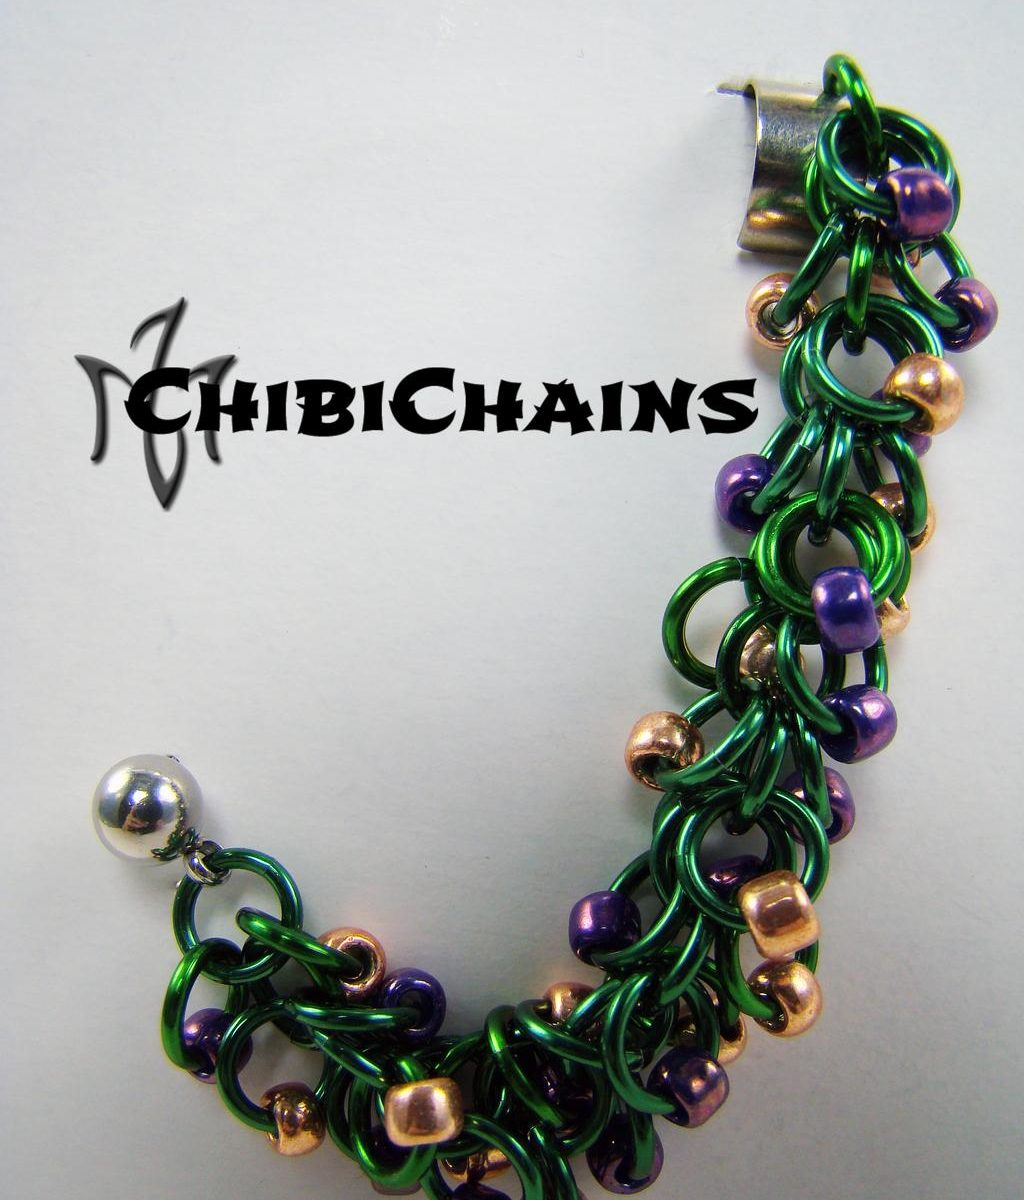 Cuff Earring - Shaggy Loops by Chibi Chains